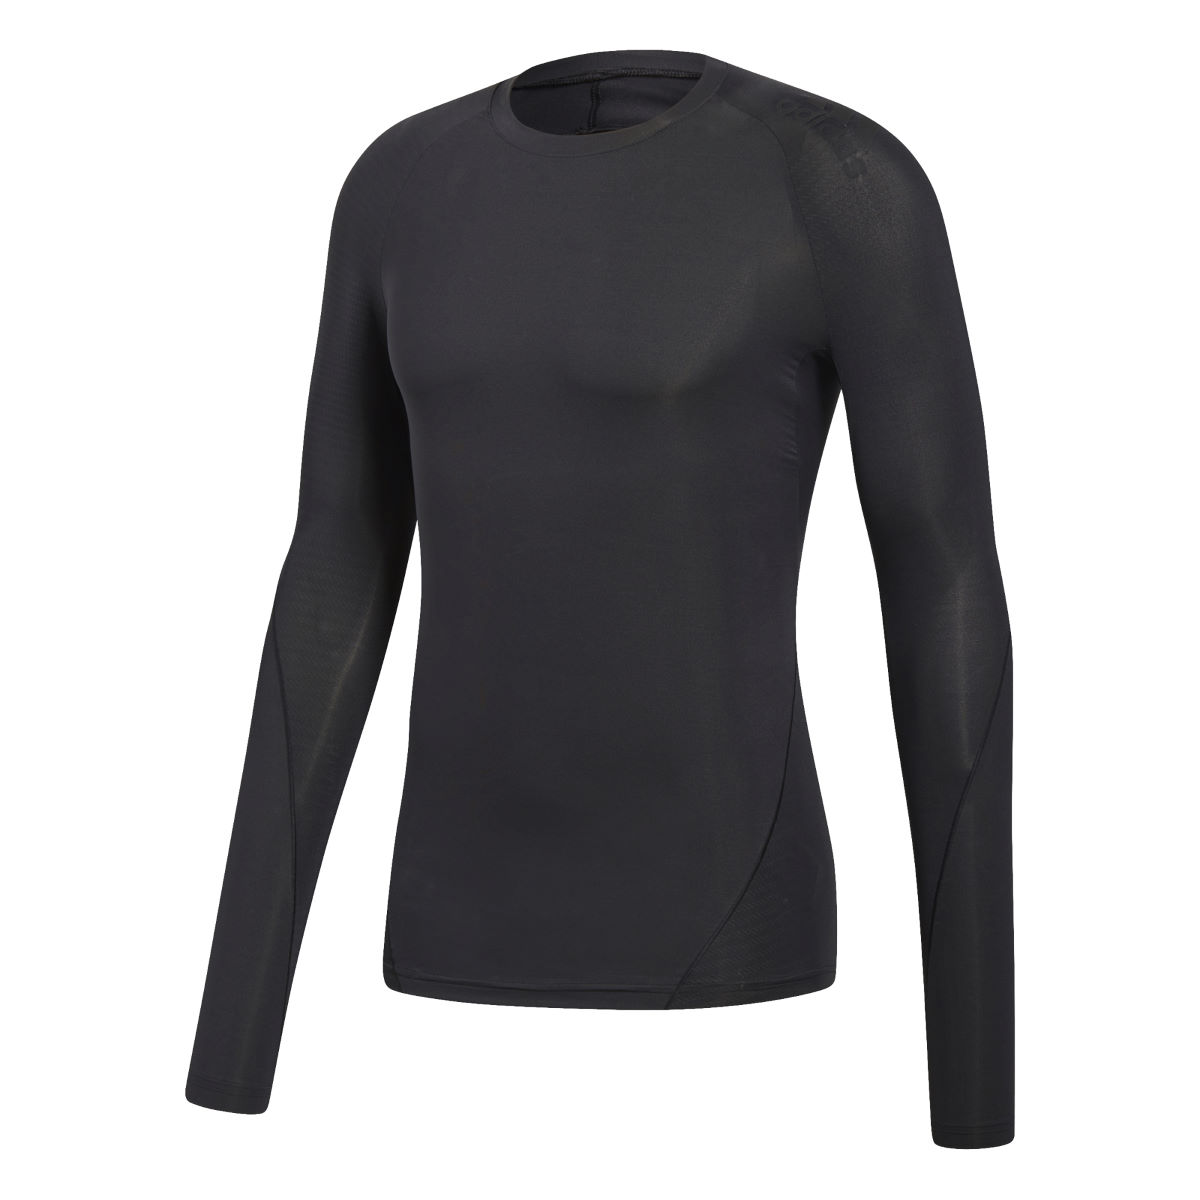 Maillot adidas Alphaskin Tech (manches longues) - M BLACK